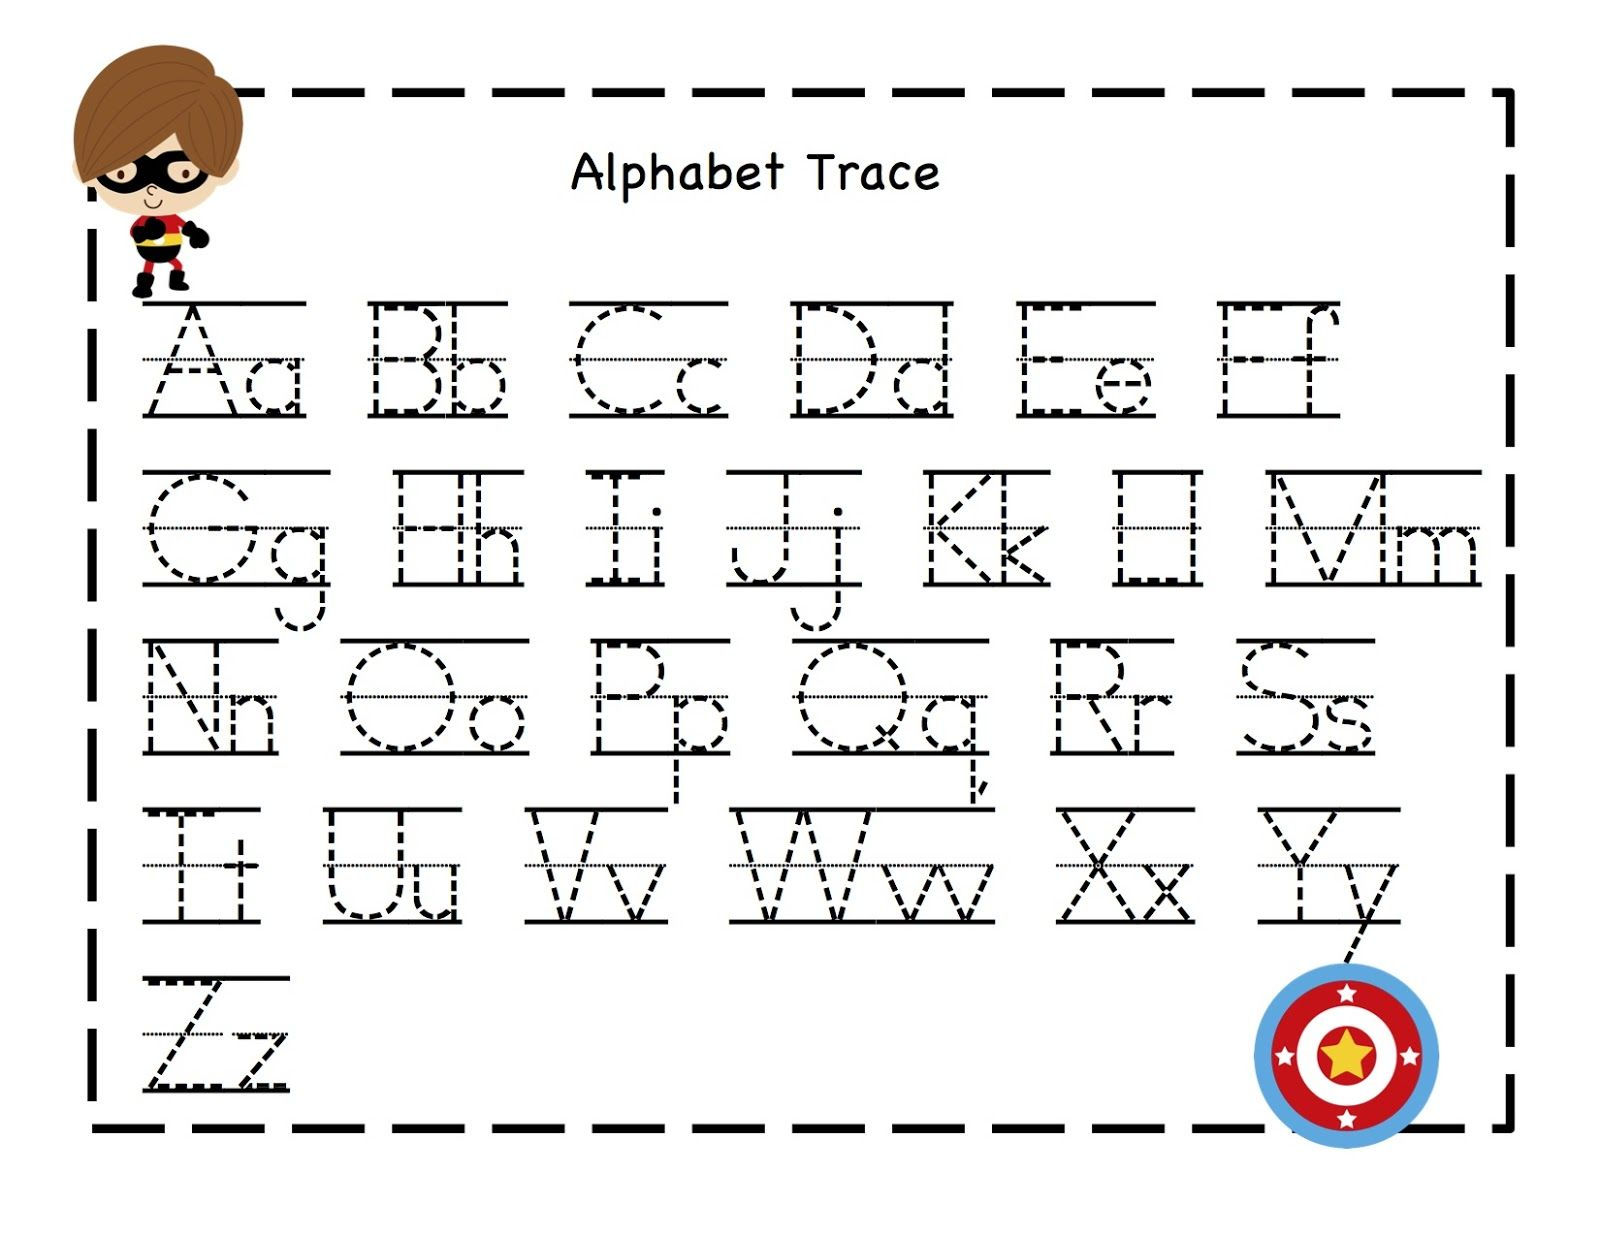 Preschool printablesphabet tracing sheet from owensfamily preschool printablesphabet tracing sheet from owensfamily gwynspot spiritdancerdesigns Images